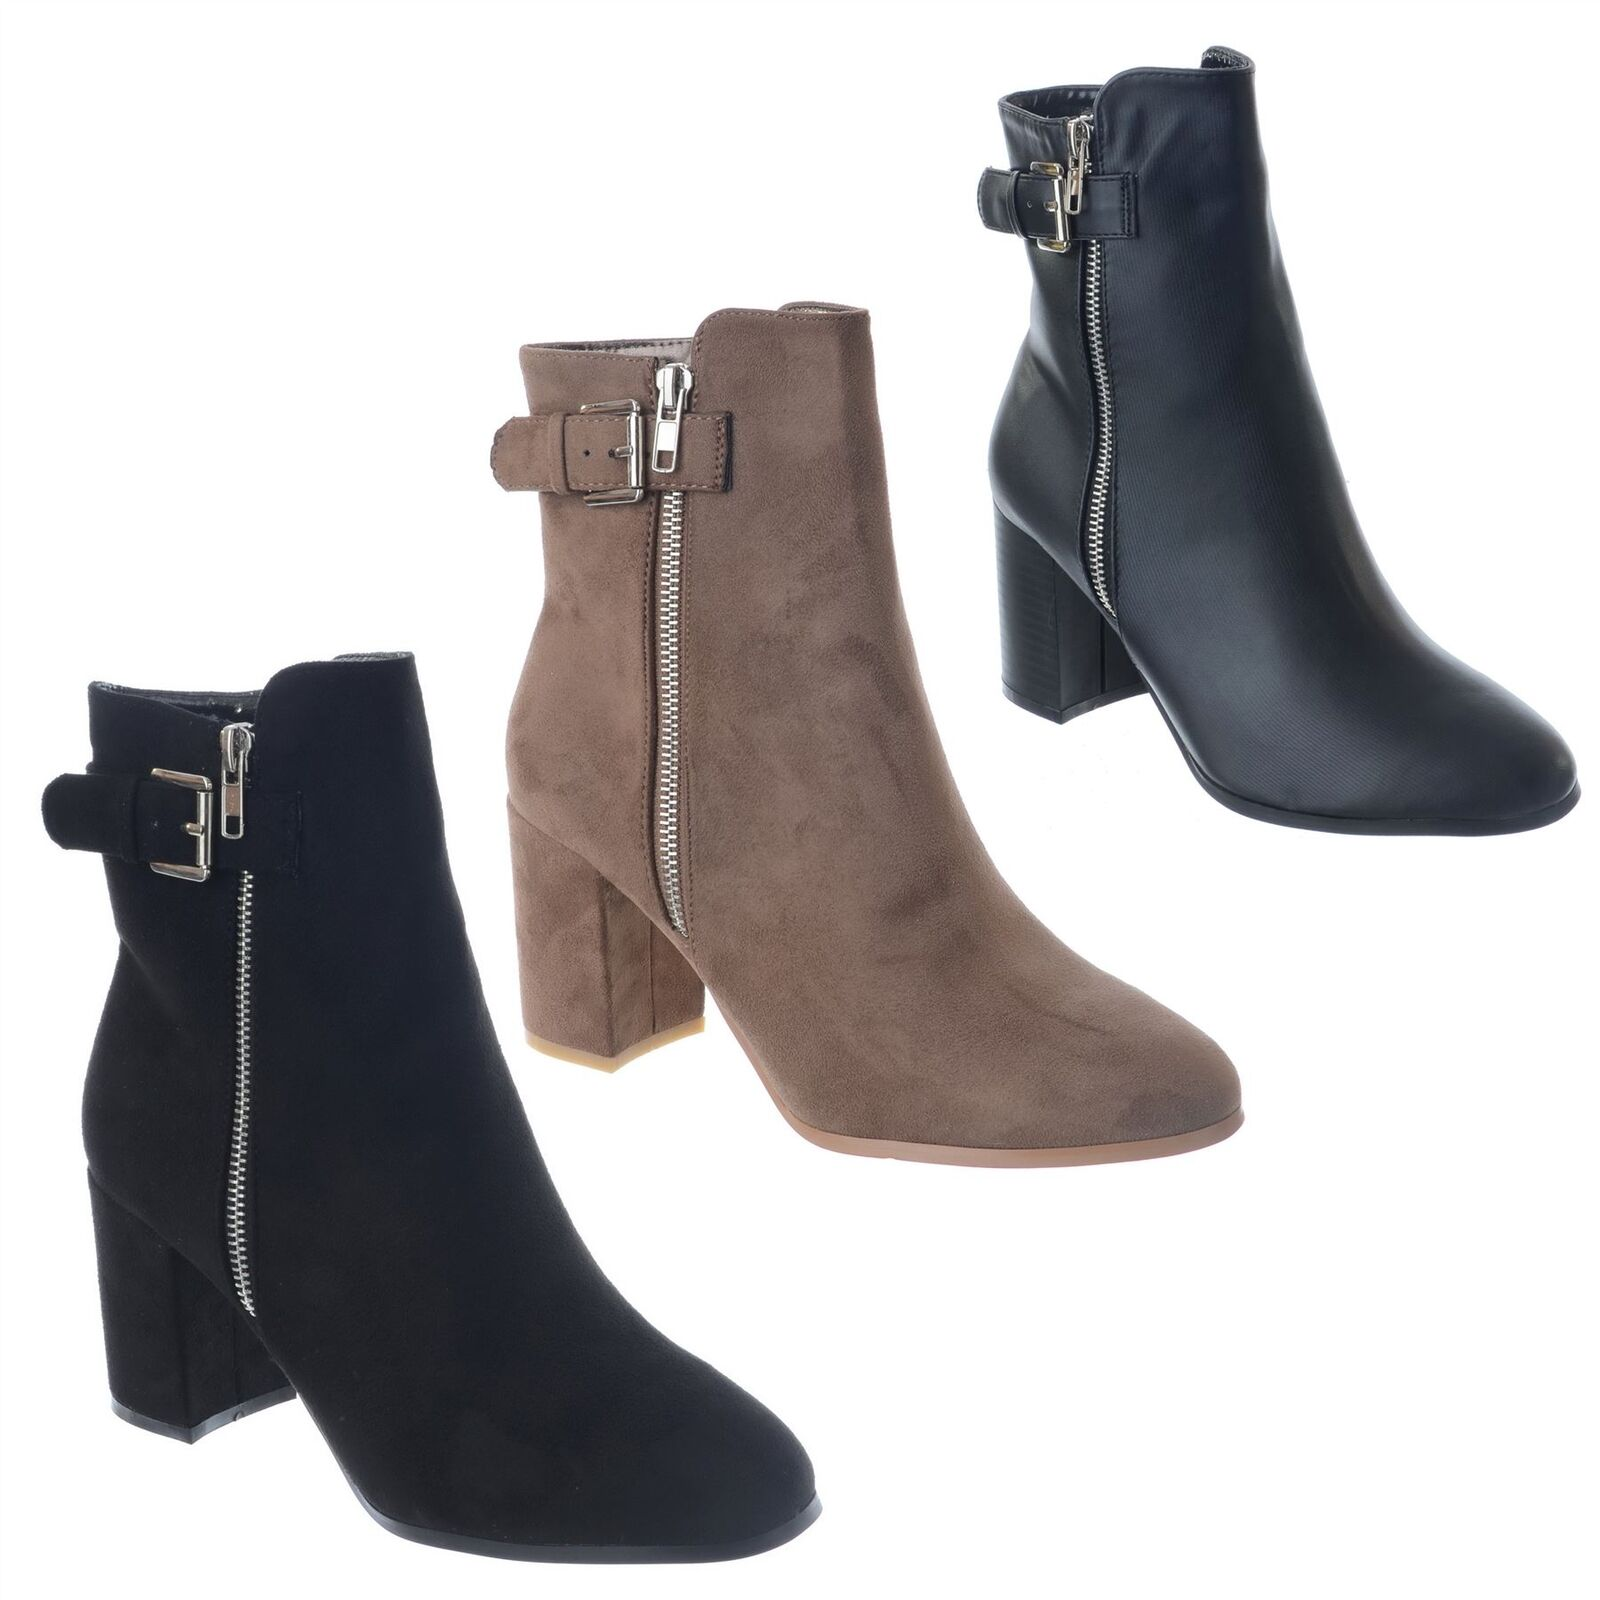 WOMENS LADIES ANKLE BOOTS BLOCK MID HIGH HEEL CASUAL CHUNKY BUCKLE SHOES SIZE